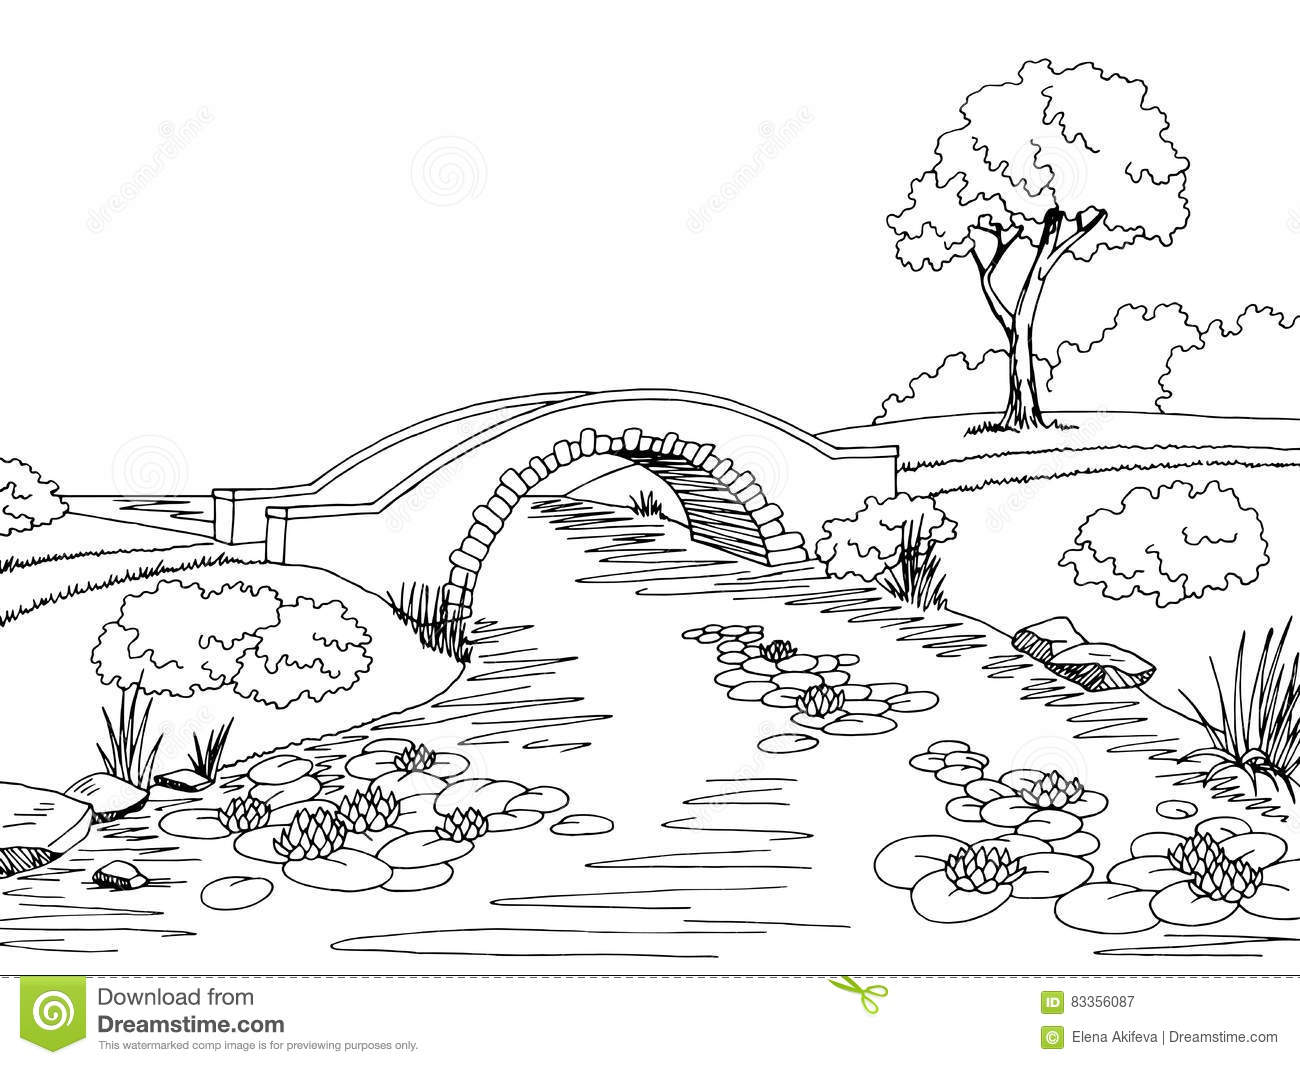 Stock Illustration Countryside Sketch Illustration Hand Drawn Your Design Image83001907 also Stock Illustration Mountain Lake Pine Trees Landscape Hand Drawn View Forest Vector Illustration Image67951861 in addition Indian chief headdress furthermore Bridge Graphic Art Black White Landscape Sketch Illustration also Stock Illustration Soccer Ball Black Outline Vector White Background Image48570437. on outdoors graphic design